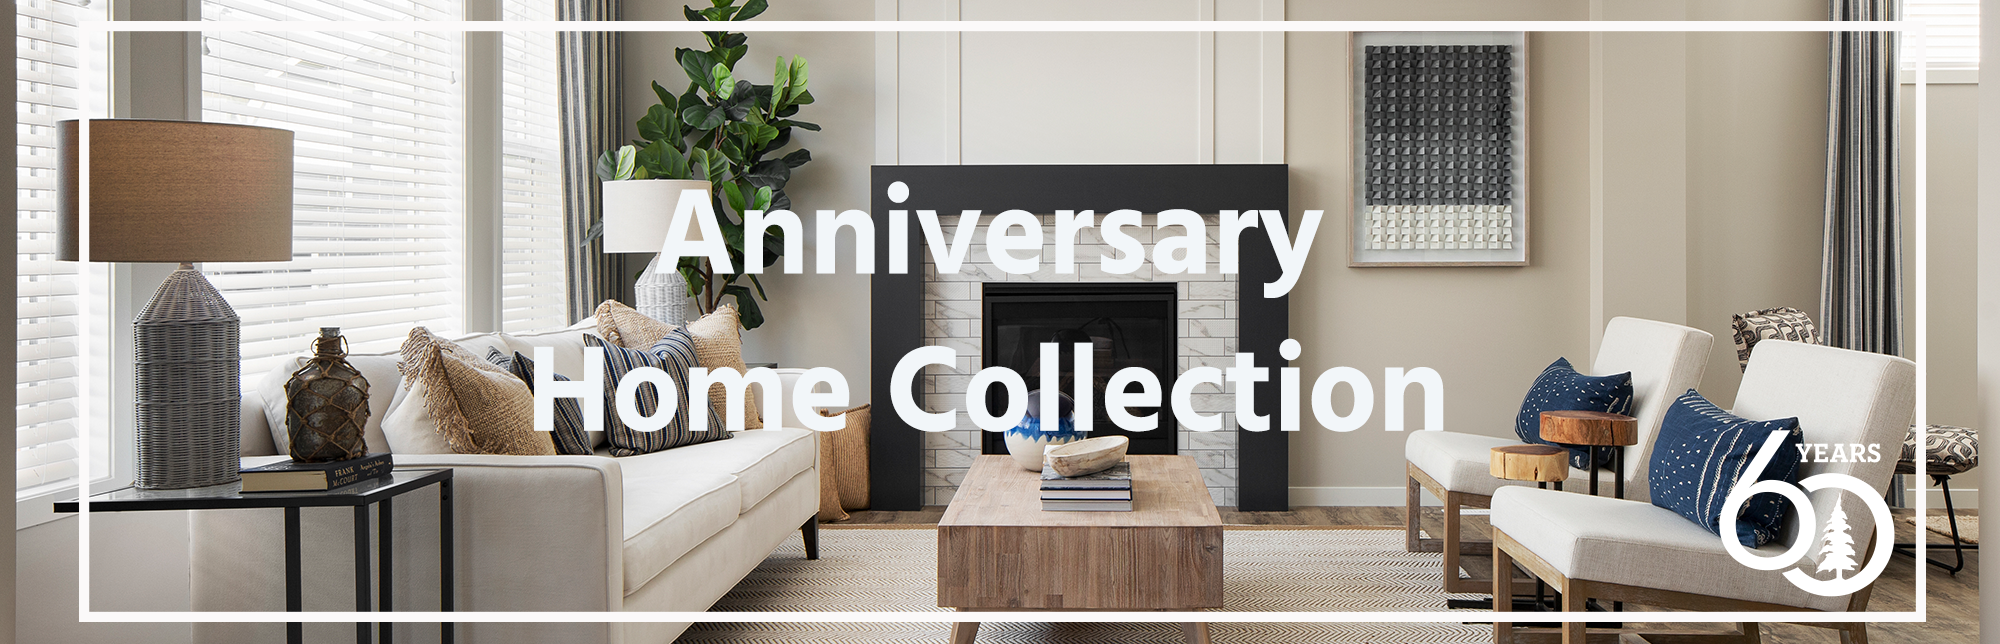 MH 60th Anniversary Home Collection Header V2